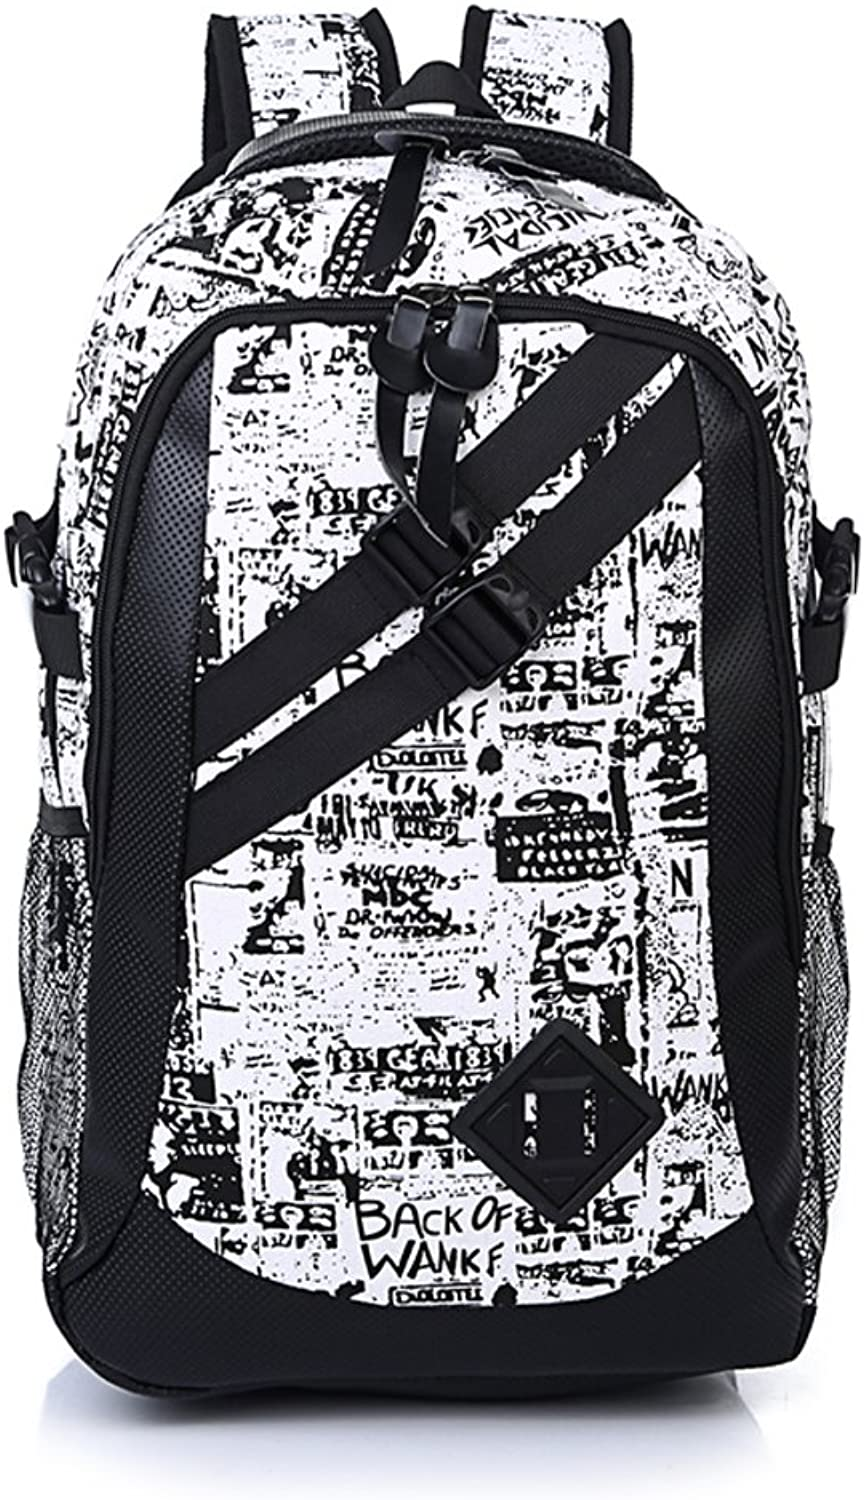 Youth Men and women versatile double shoulder bag Tide cool canvas backpack Fashion backpack Wild casual backpack Camouflage graffiti backpack School bags Computer bag-D